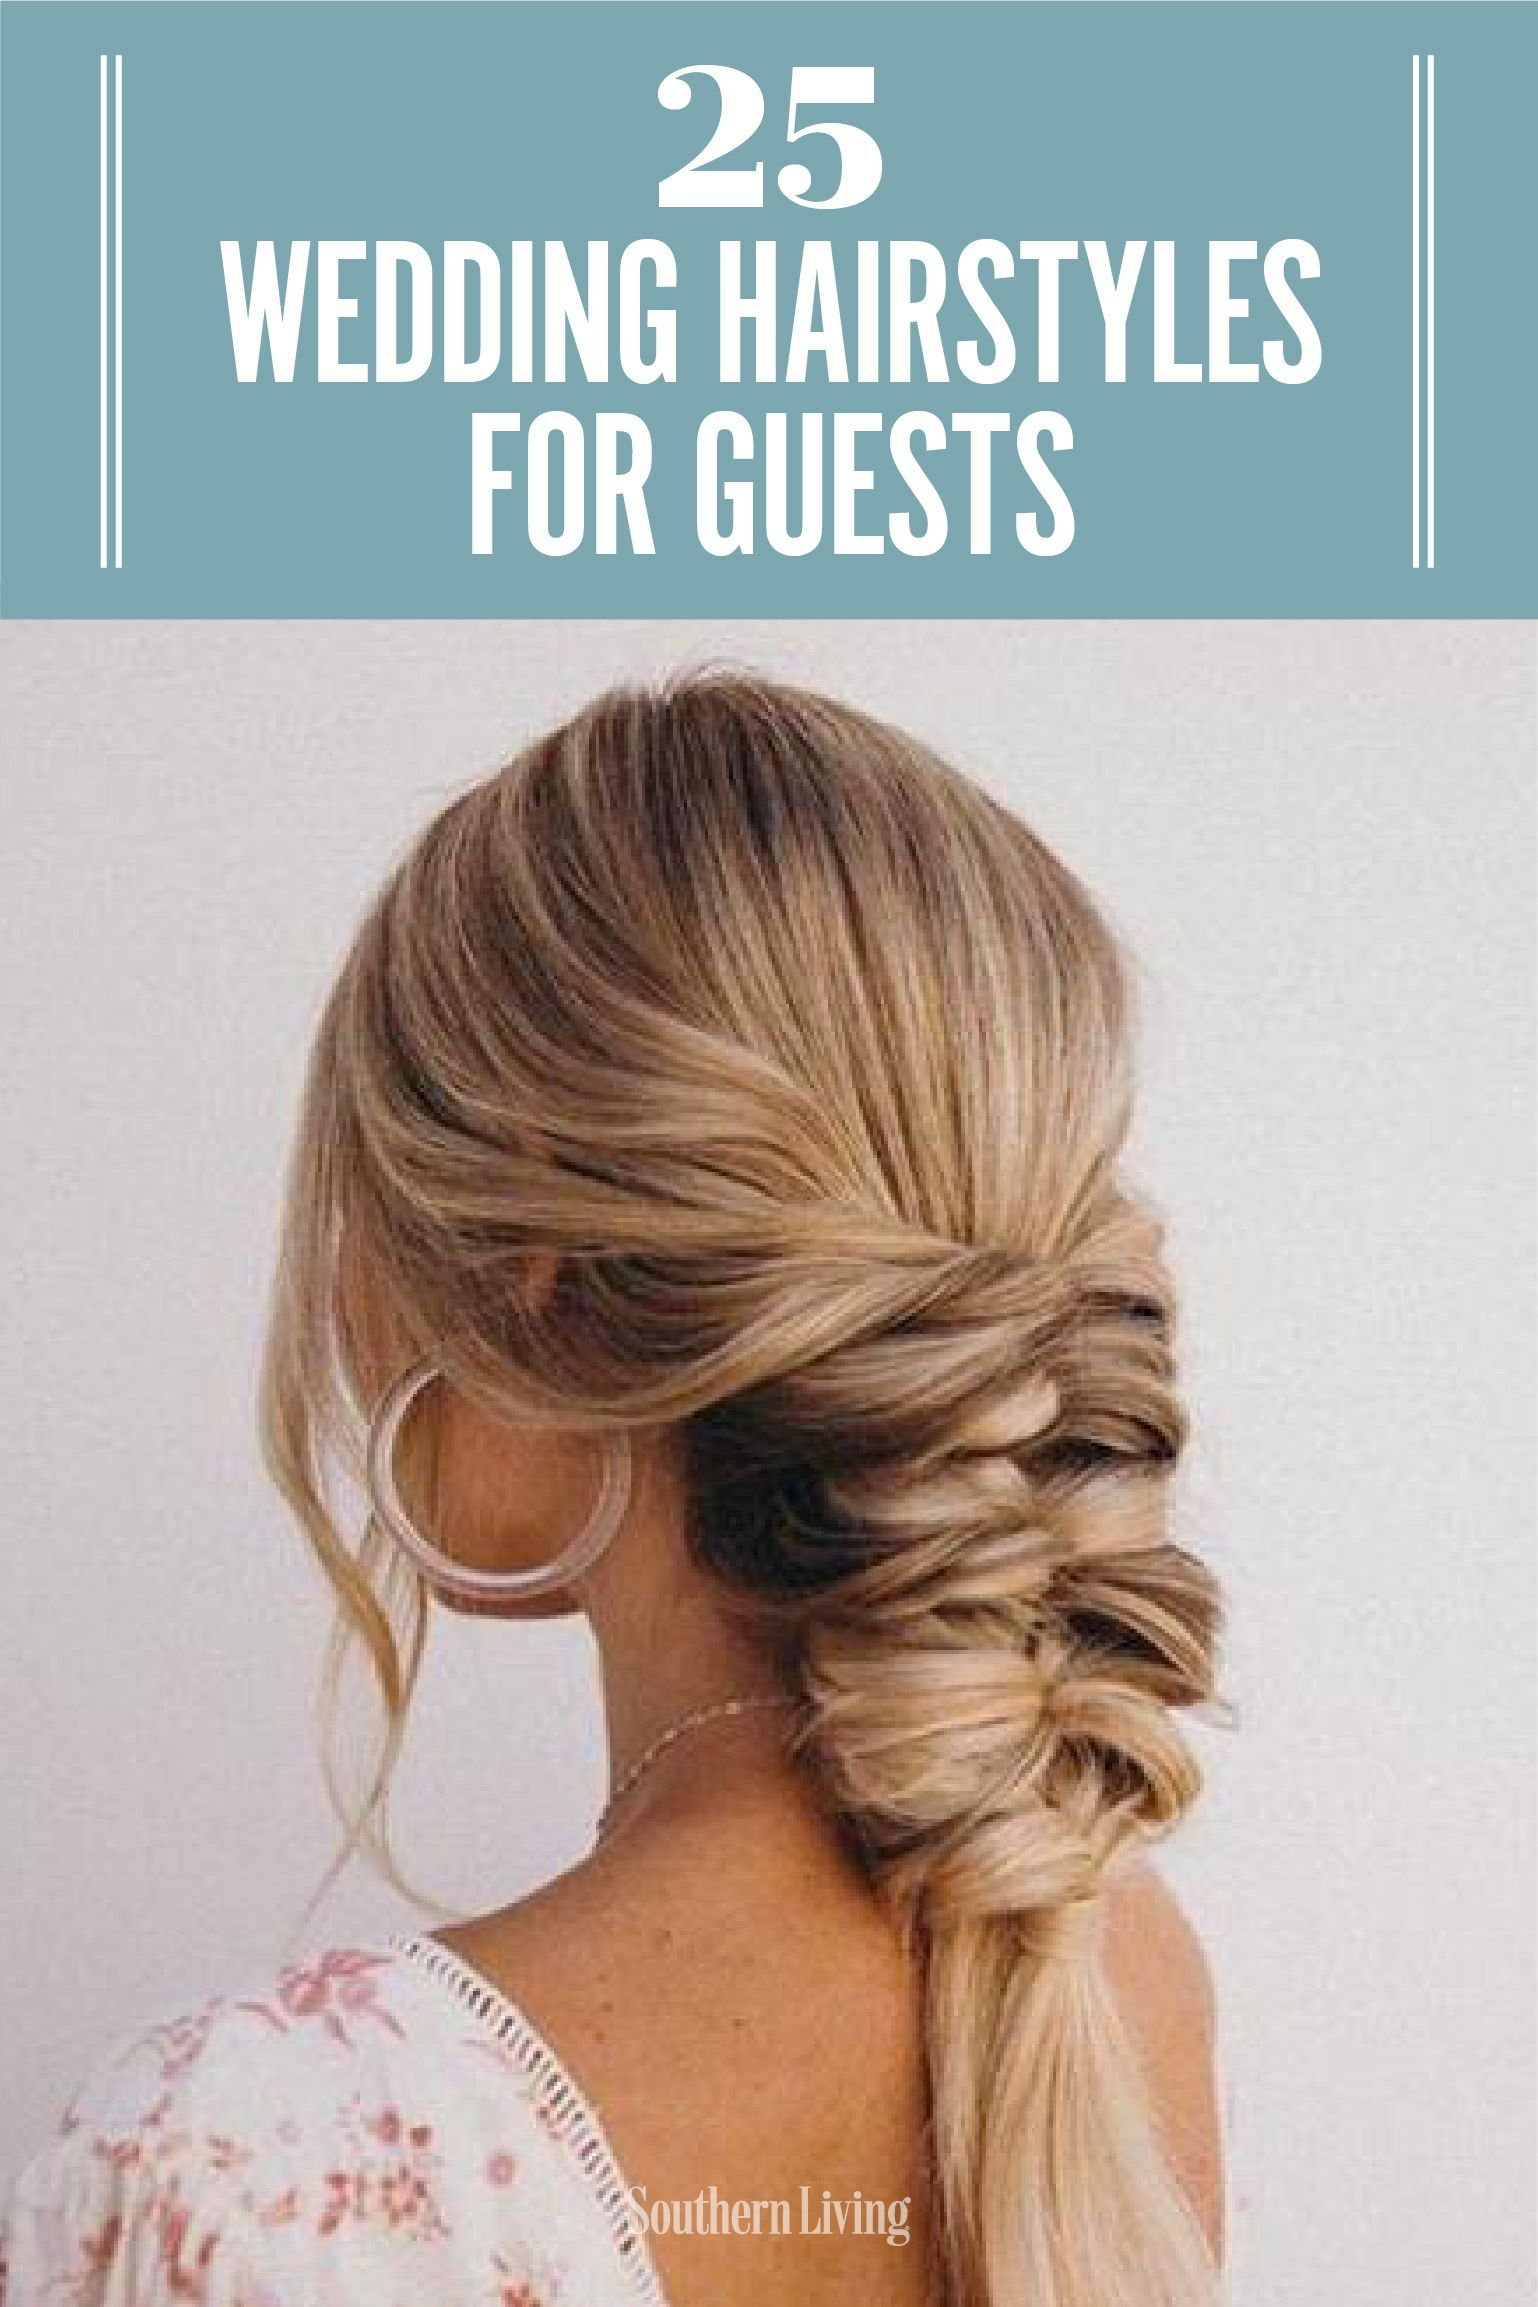 25 Easy Wedding Hairstyles For Guests That Ll Work For Every Dress Code Easy Wedding Guest Hairstyles Wedding Guest Hairstyles Simple Wedding Hairstyles